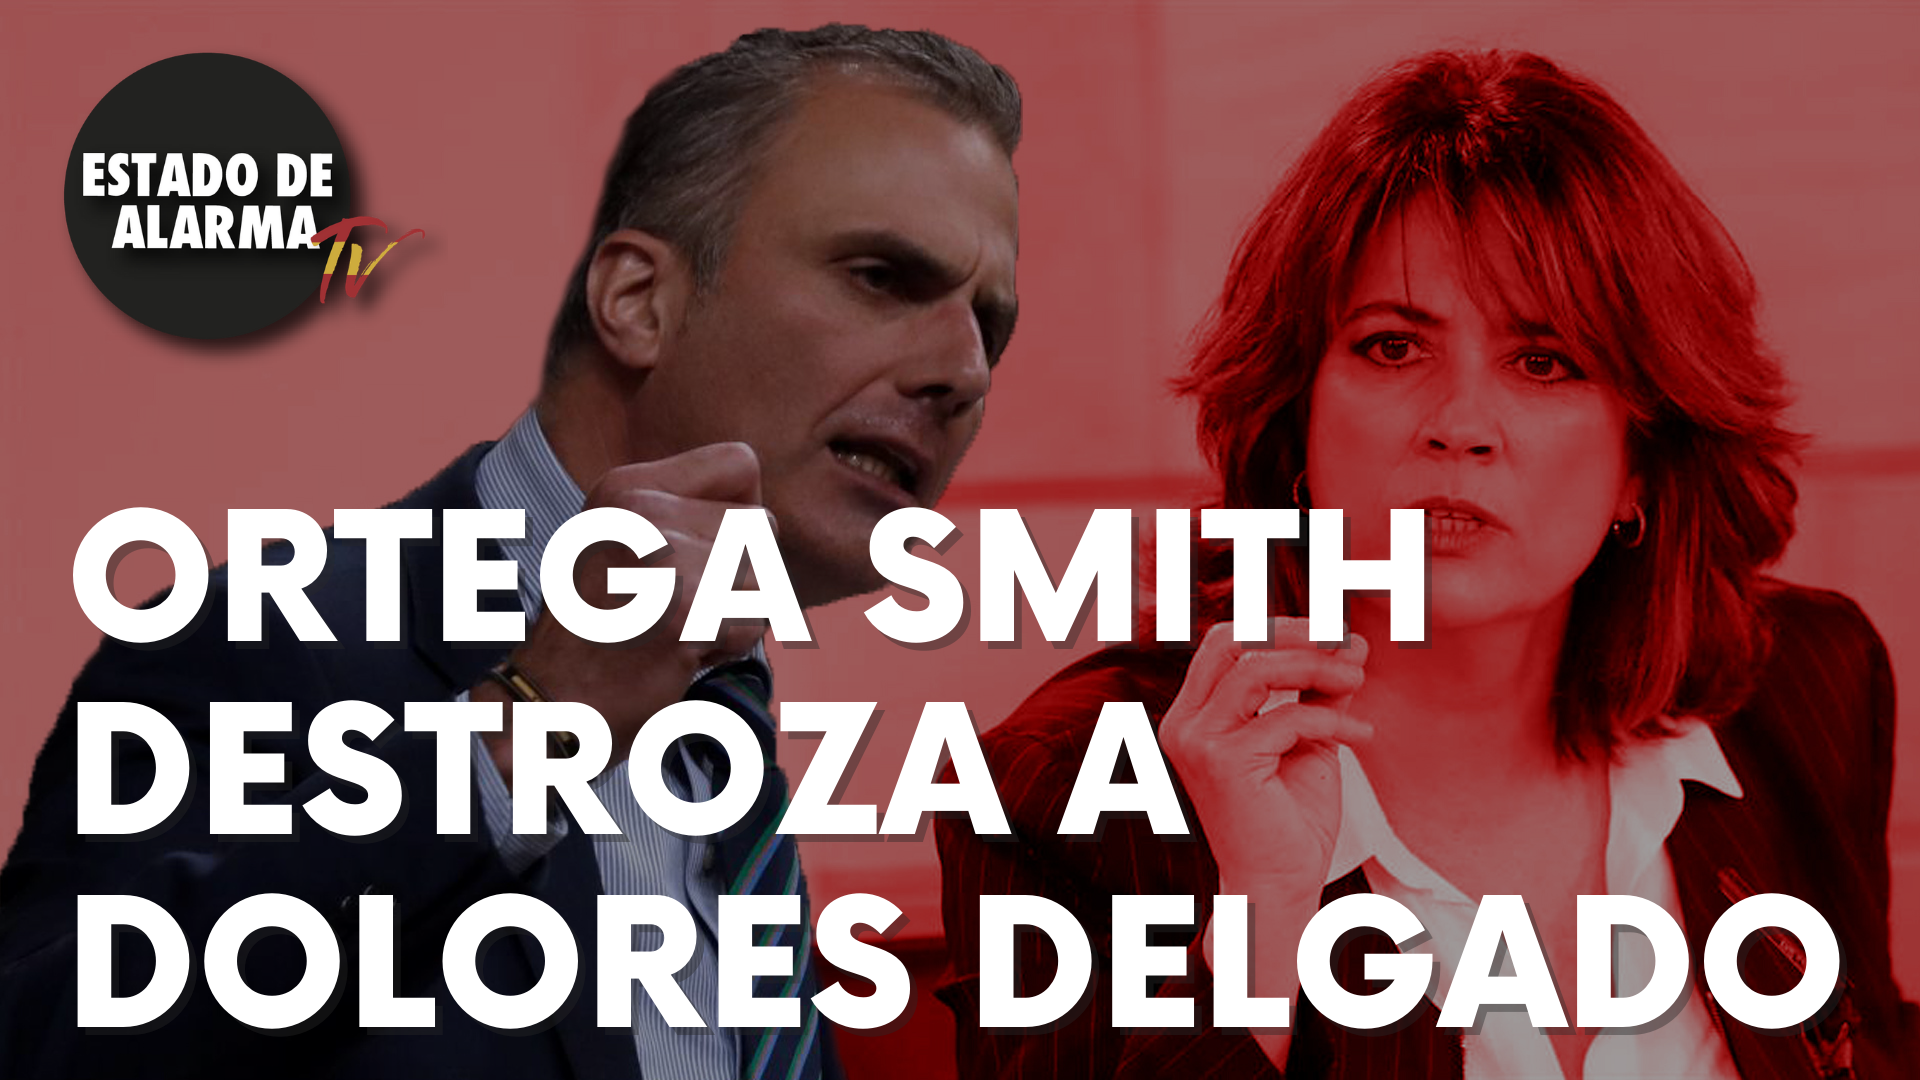 Ortega Smith destroza a la Fiscal General Dolores Delgado